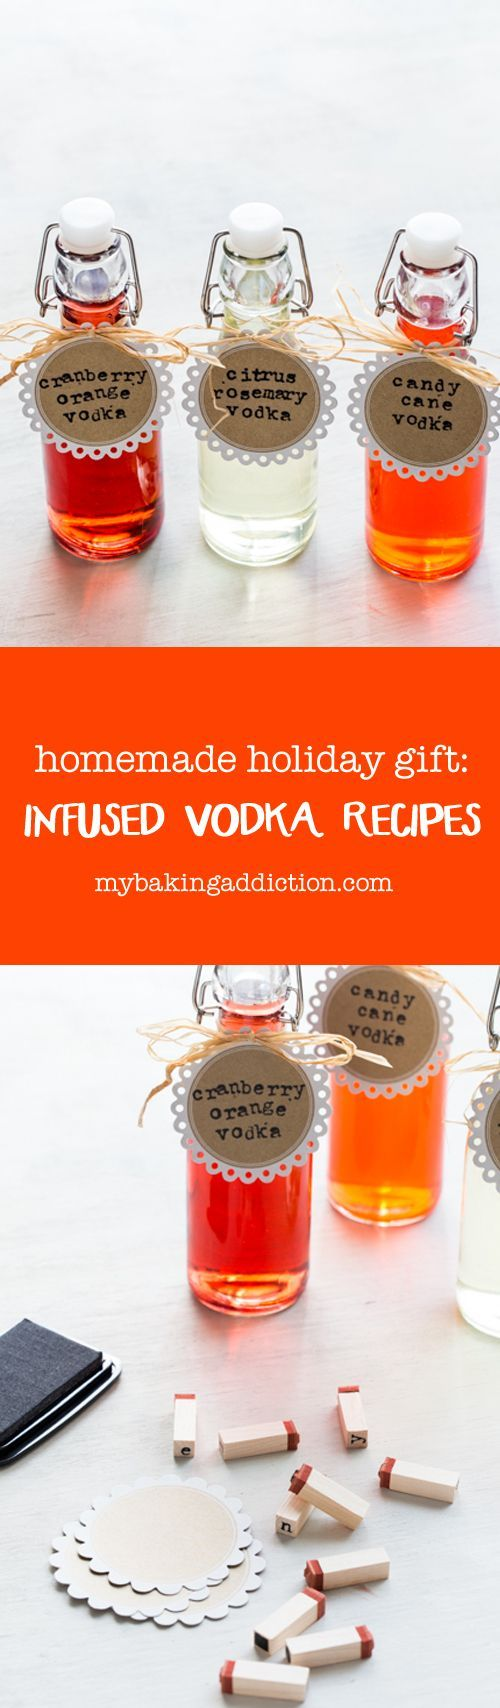 3 Infused Vodka Recipes! This is the perfect homemade holiday gift for friends and neighbors. Grab a bottle of high-quality vodka and get creative!